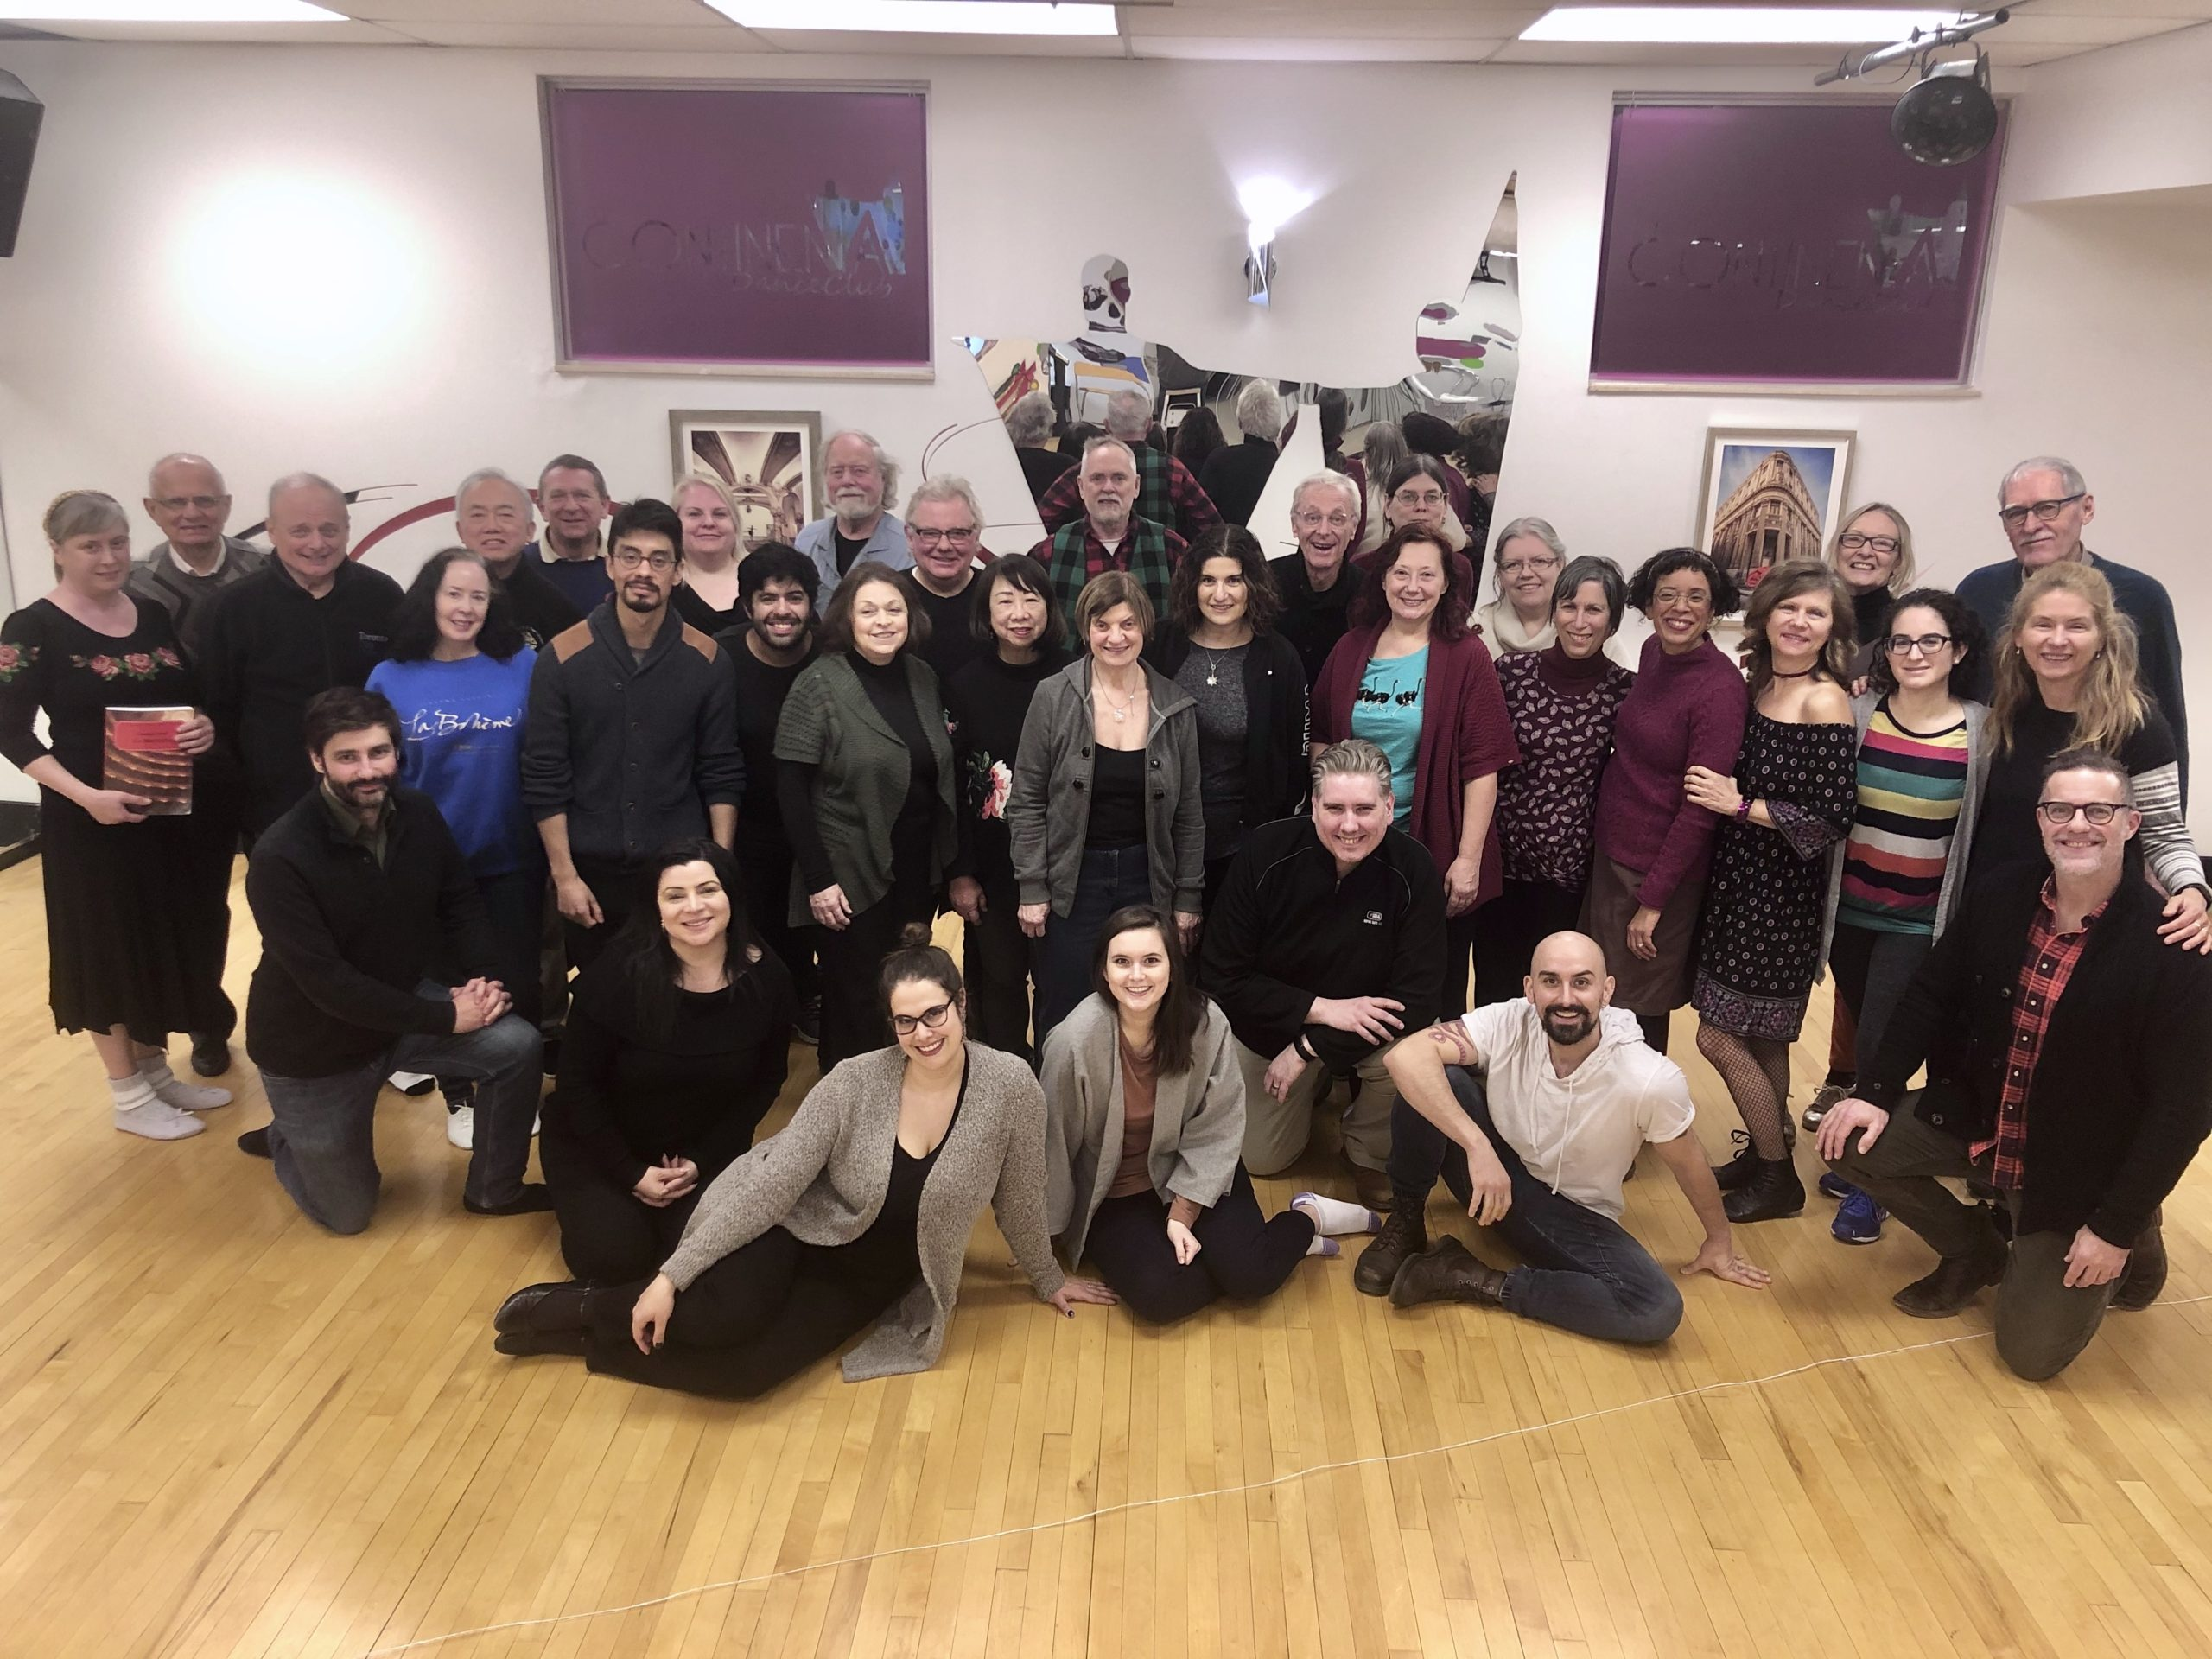 THANK YOU Mississauga Symphony Orchestra AND Toronto City Opera > FRIENDS of The Continental Dance Club